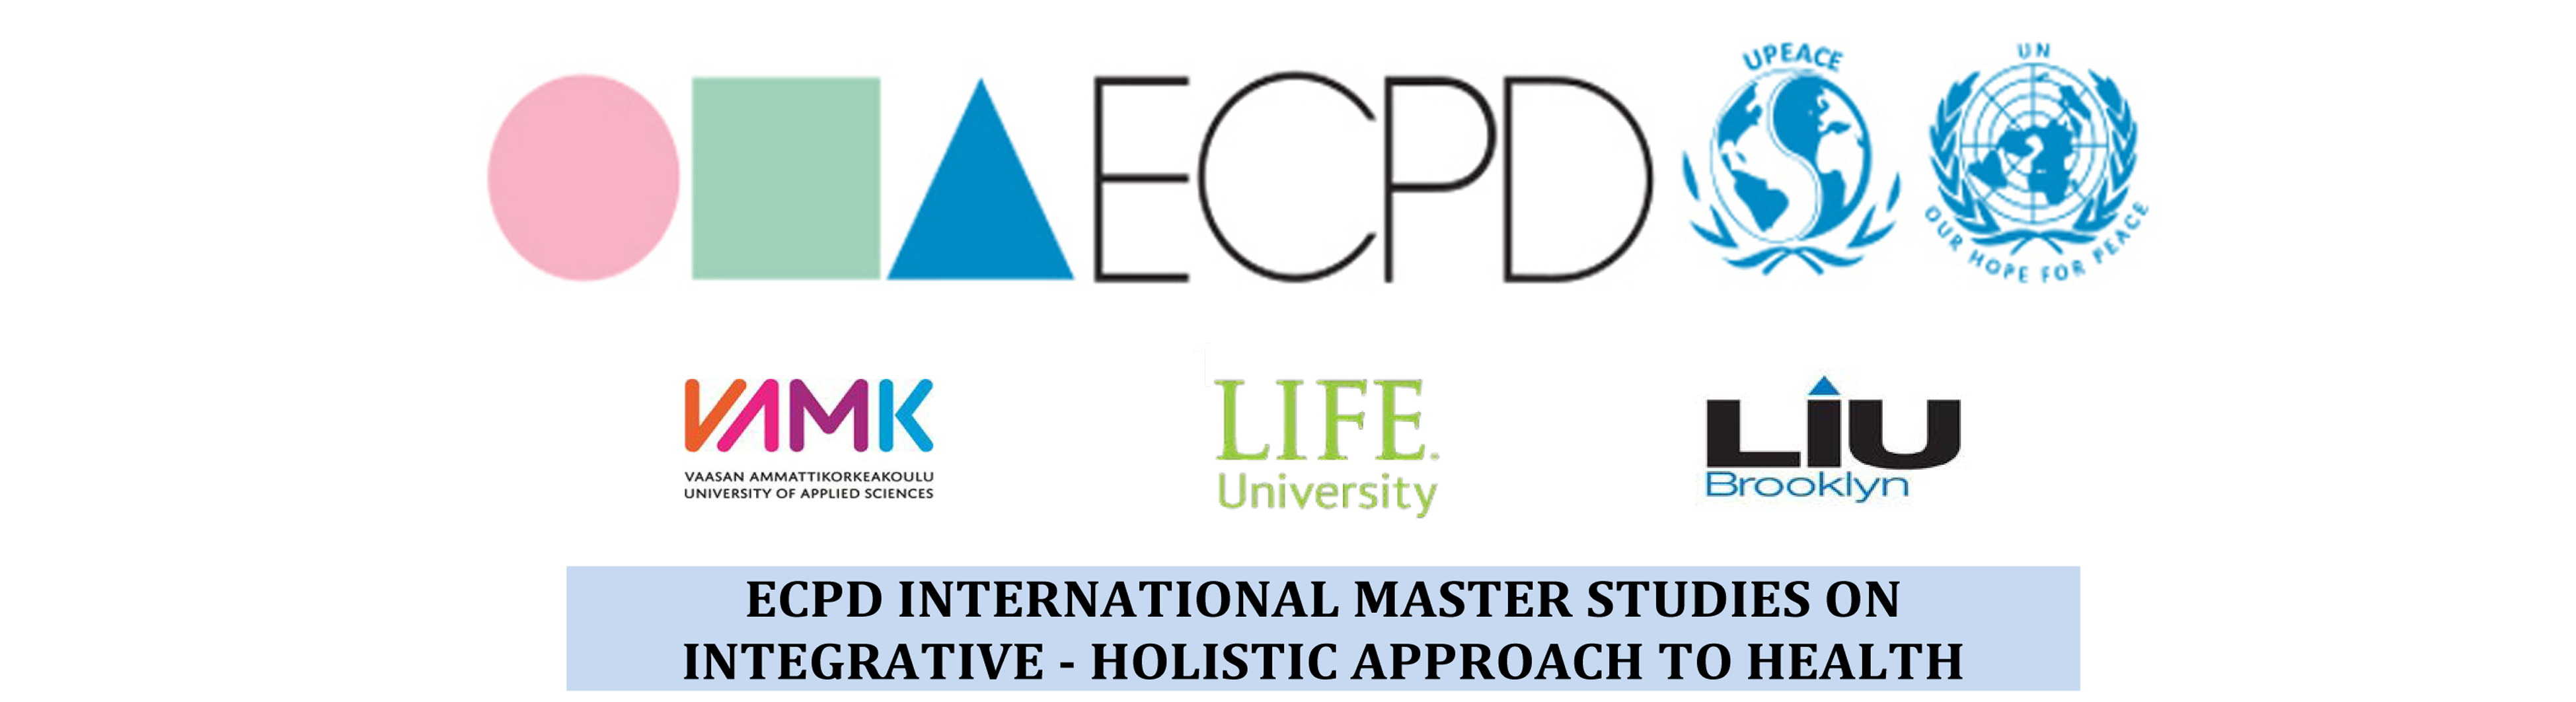 ECPD INTERNATIONAL MASTER STUDIES ON INTEGRATIVE - HOLISTIC APPROACH TO HEALTH - Belgrade, 2 March 2020 – 2 March 2021